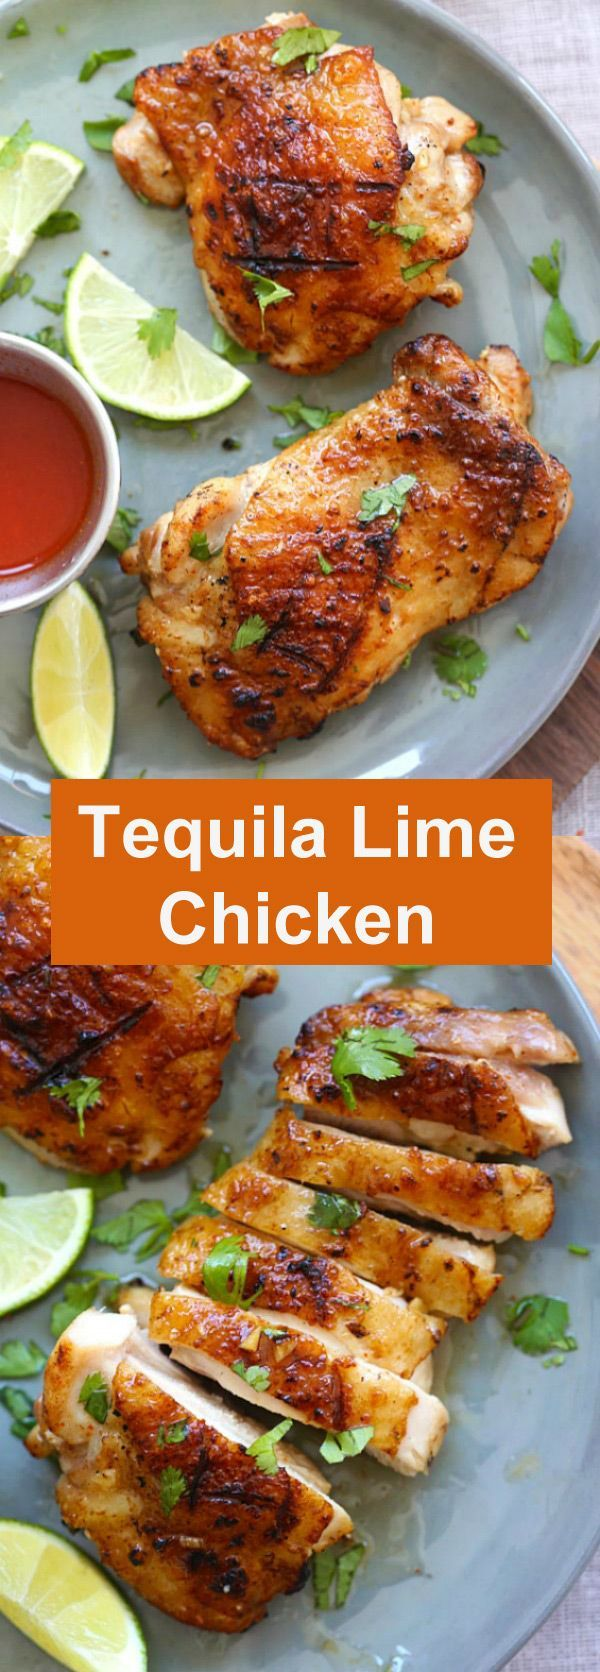 Tequila Lime Chicken - amazing chicken marinated with tequila, lime and garlic. This tequila lime chicken recipe tastes better than restaurant's | http://rasamalaysia.com